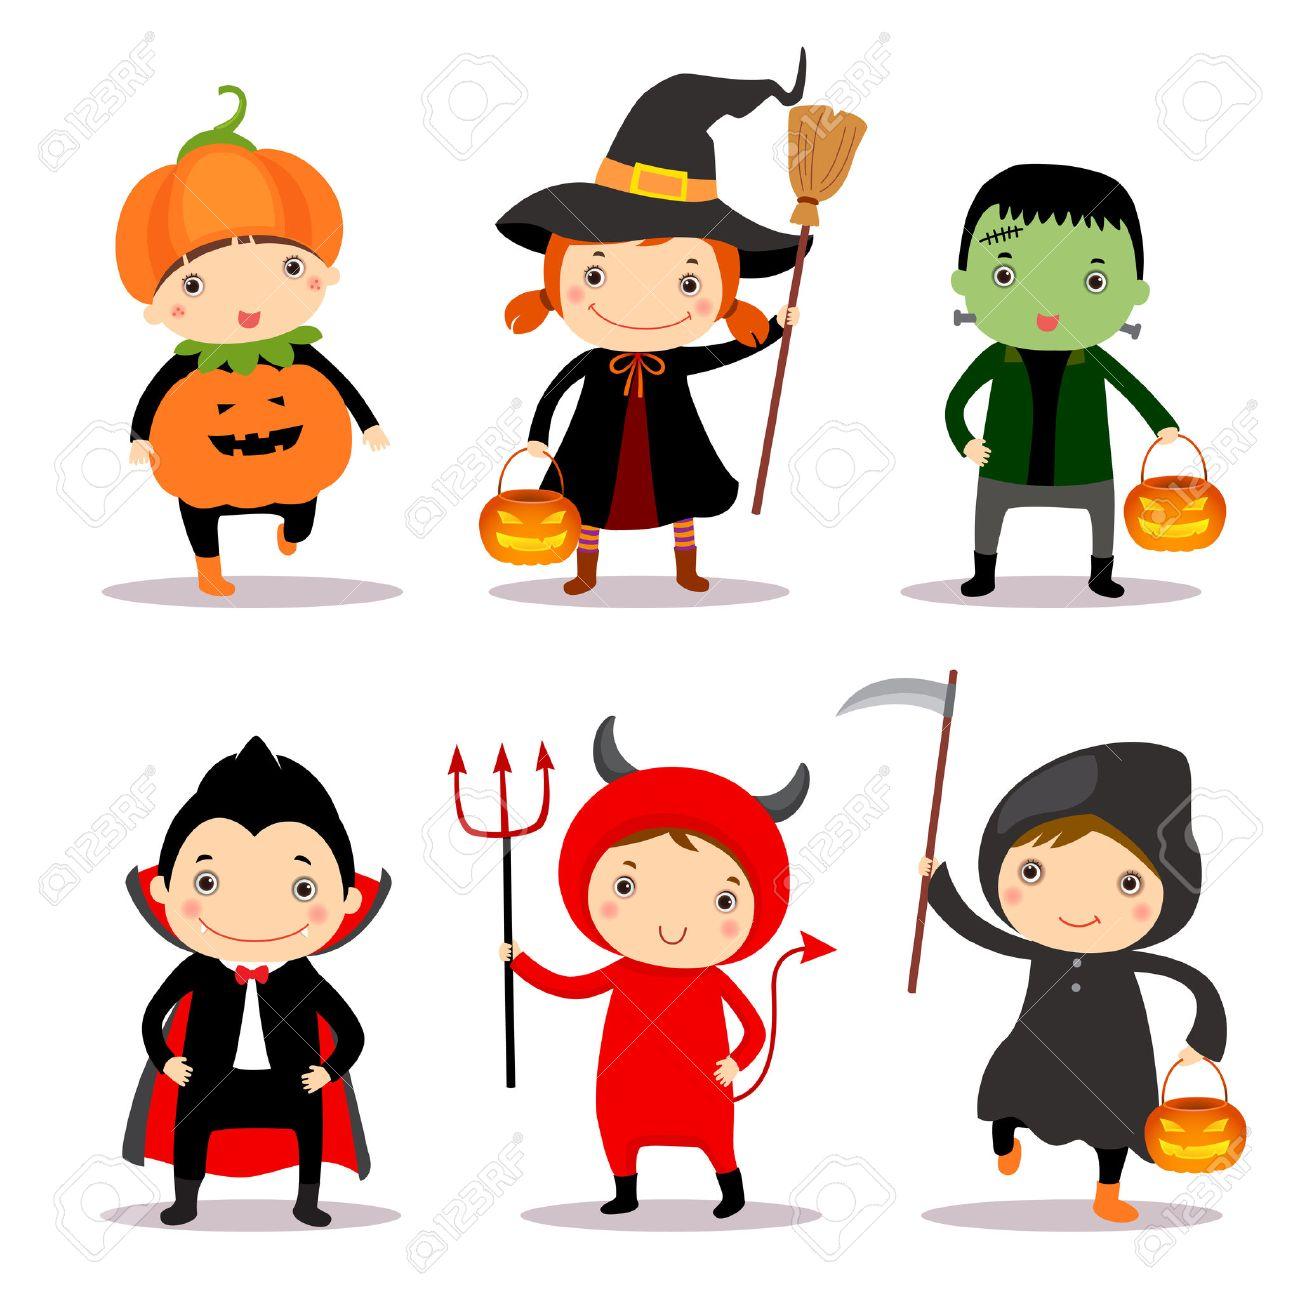 cute kids wearing halloween costumes royalty free cliparts vectors rh 123rf com cute halloween costumes clipart halloween costumes clipart